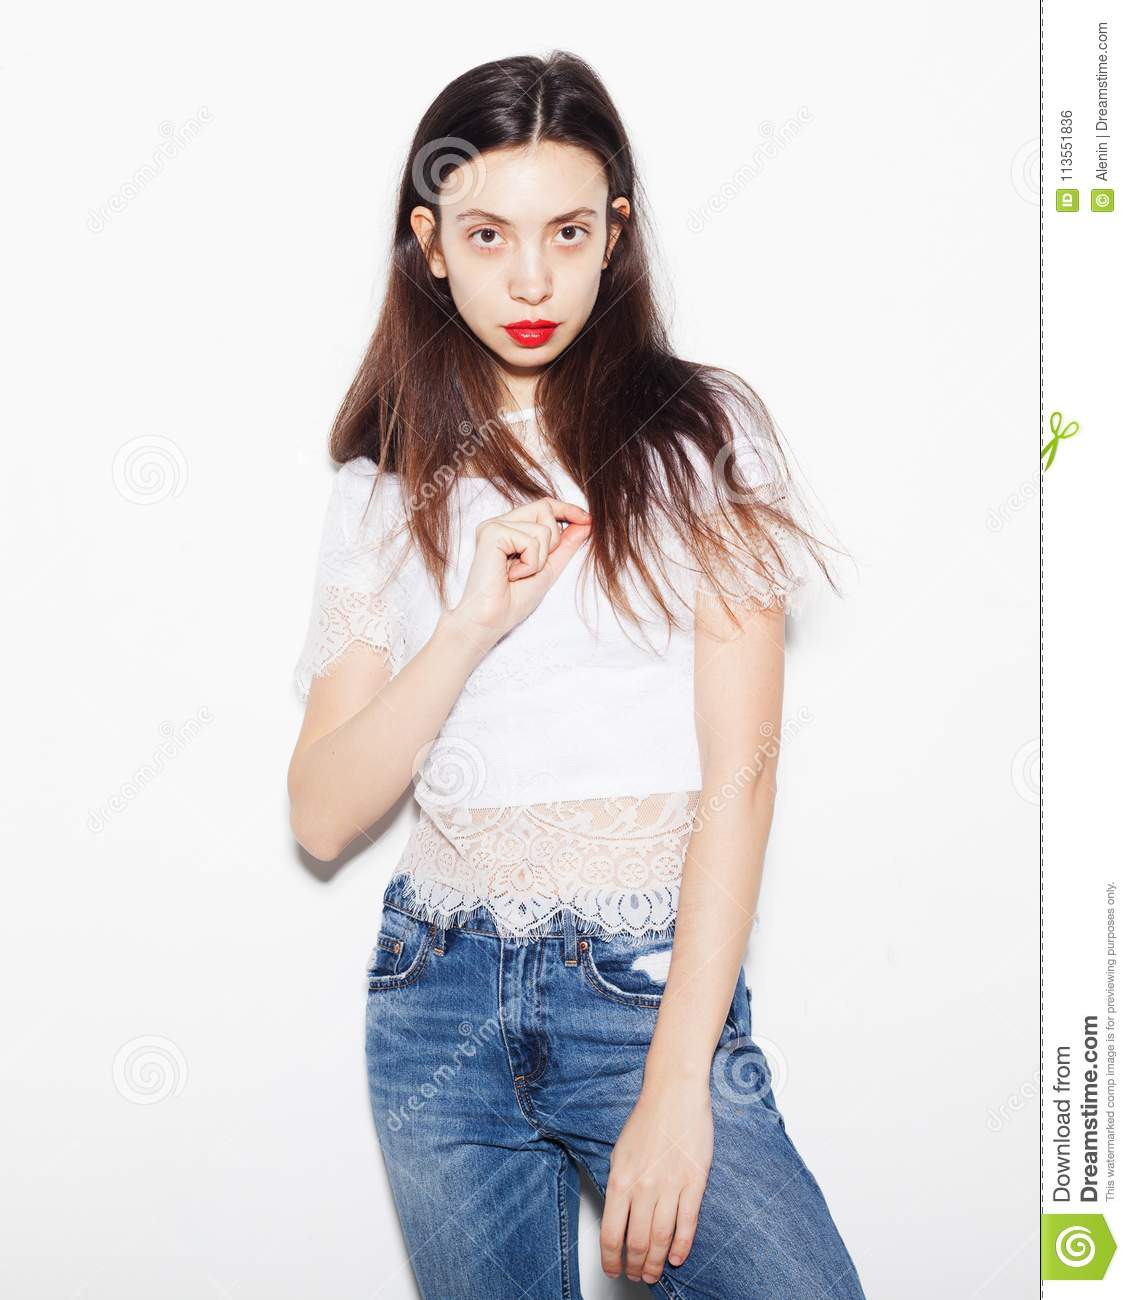 Portrait Of A Sad Young Woman In Top And Jeans Posing In The Studio